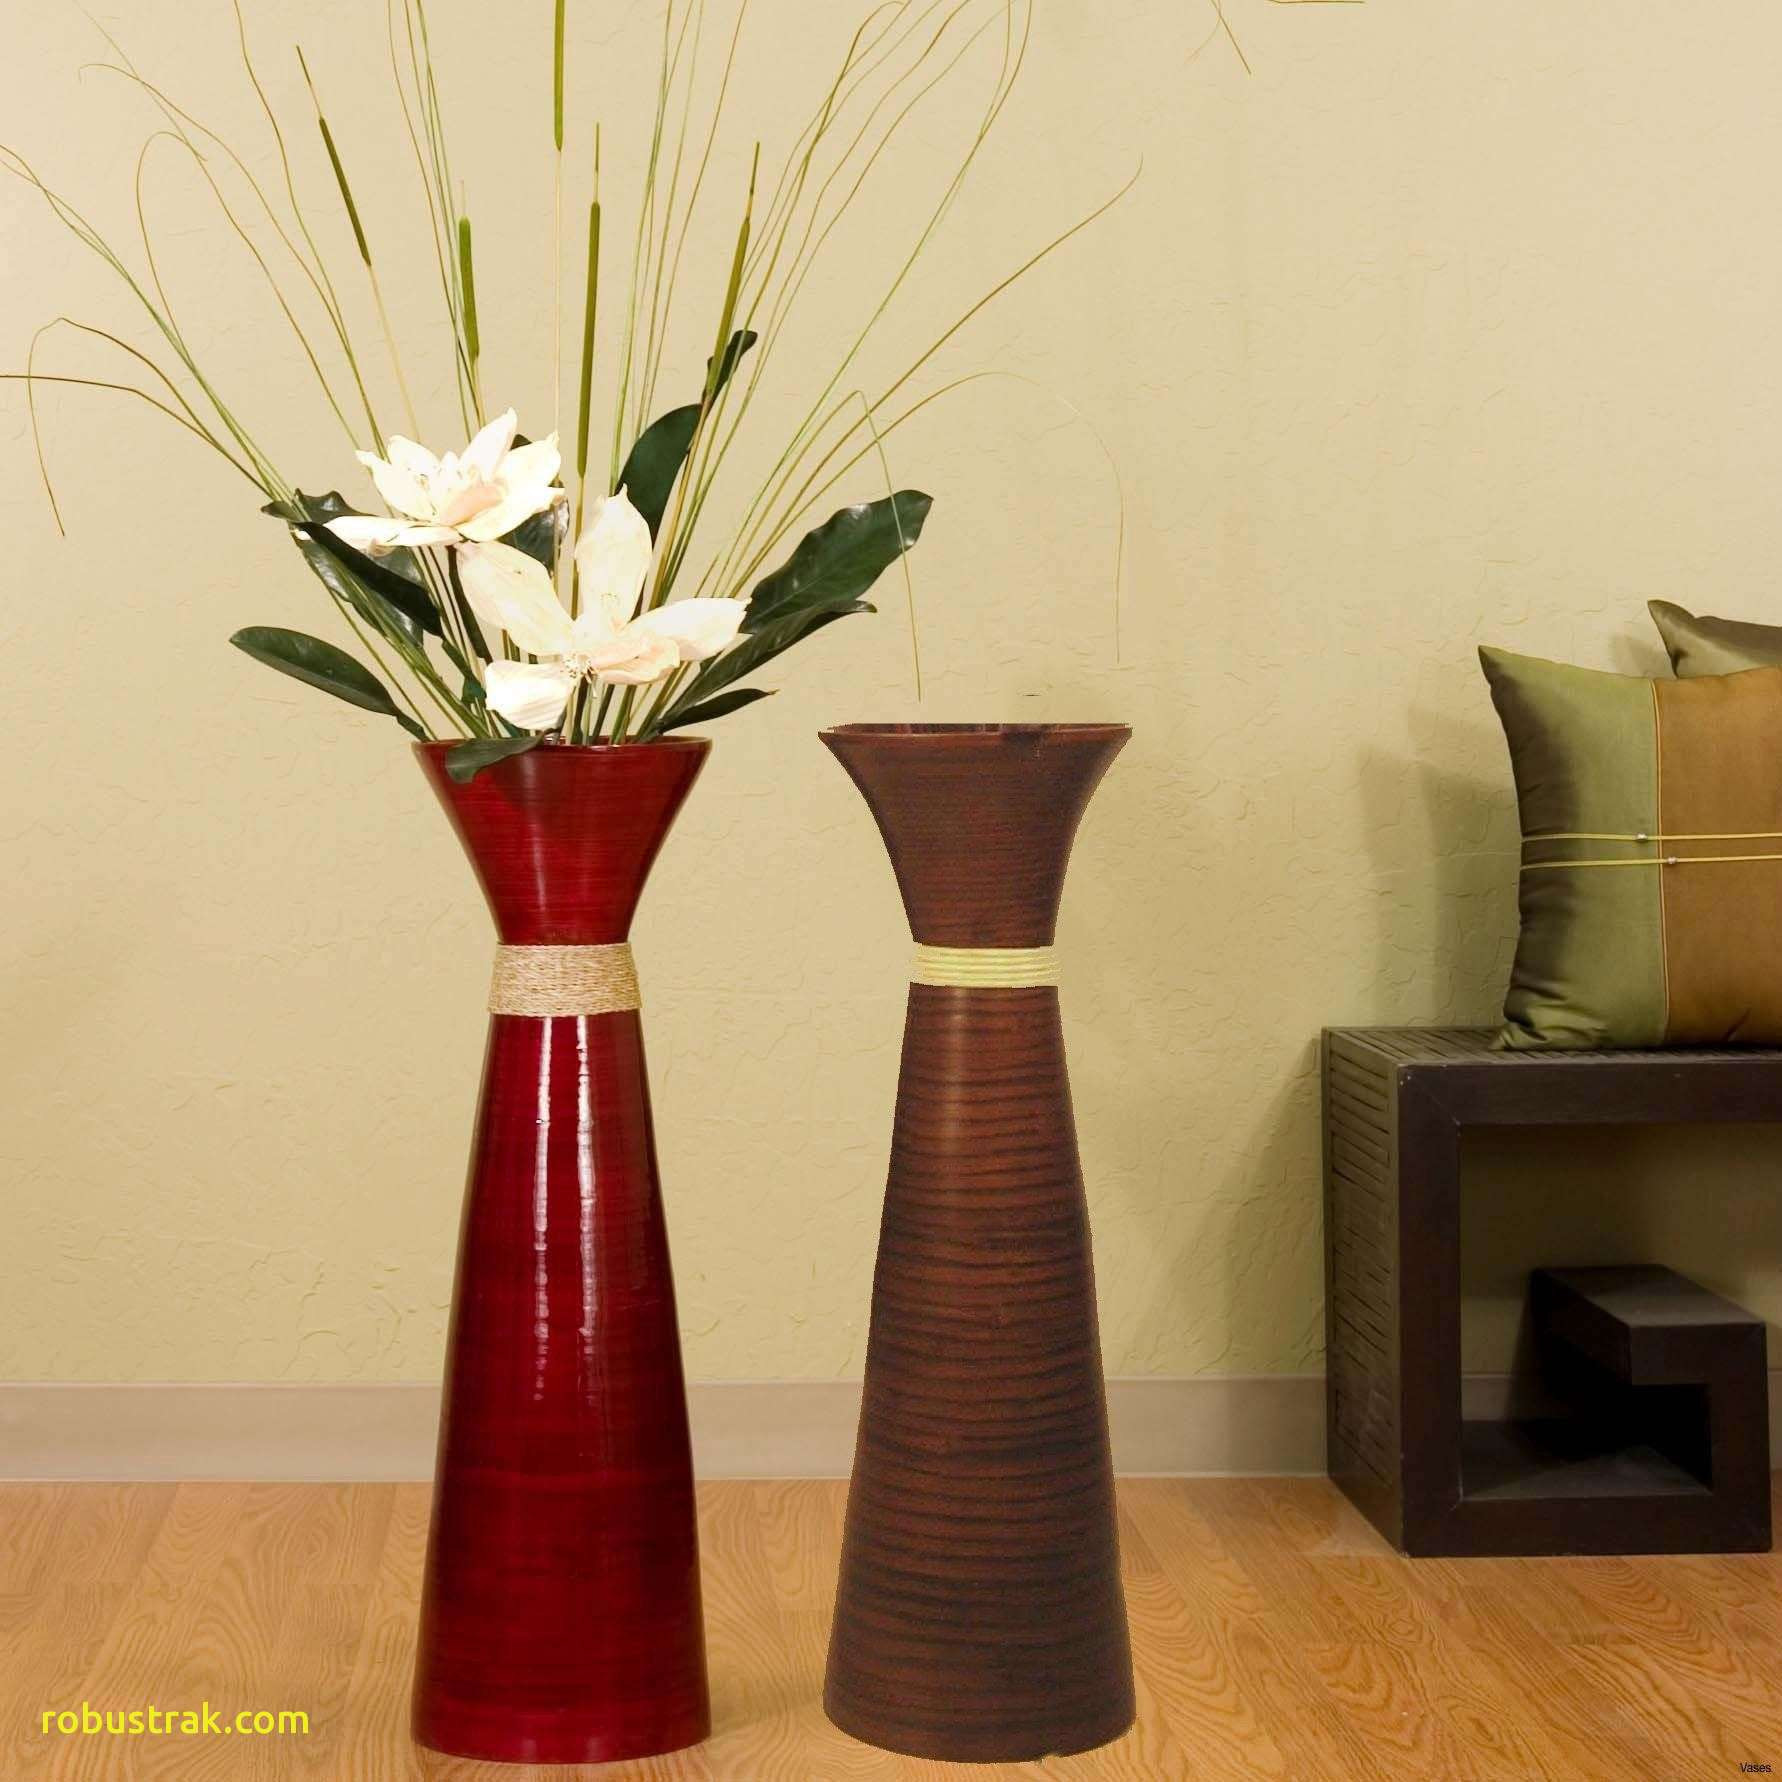 big vases for cheap of new floor vase with branches home design ideas intended for living room floor vase decor beautiful fancy big vases for living room